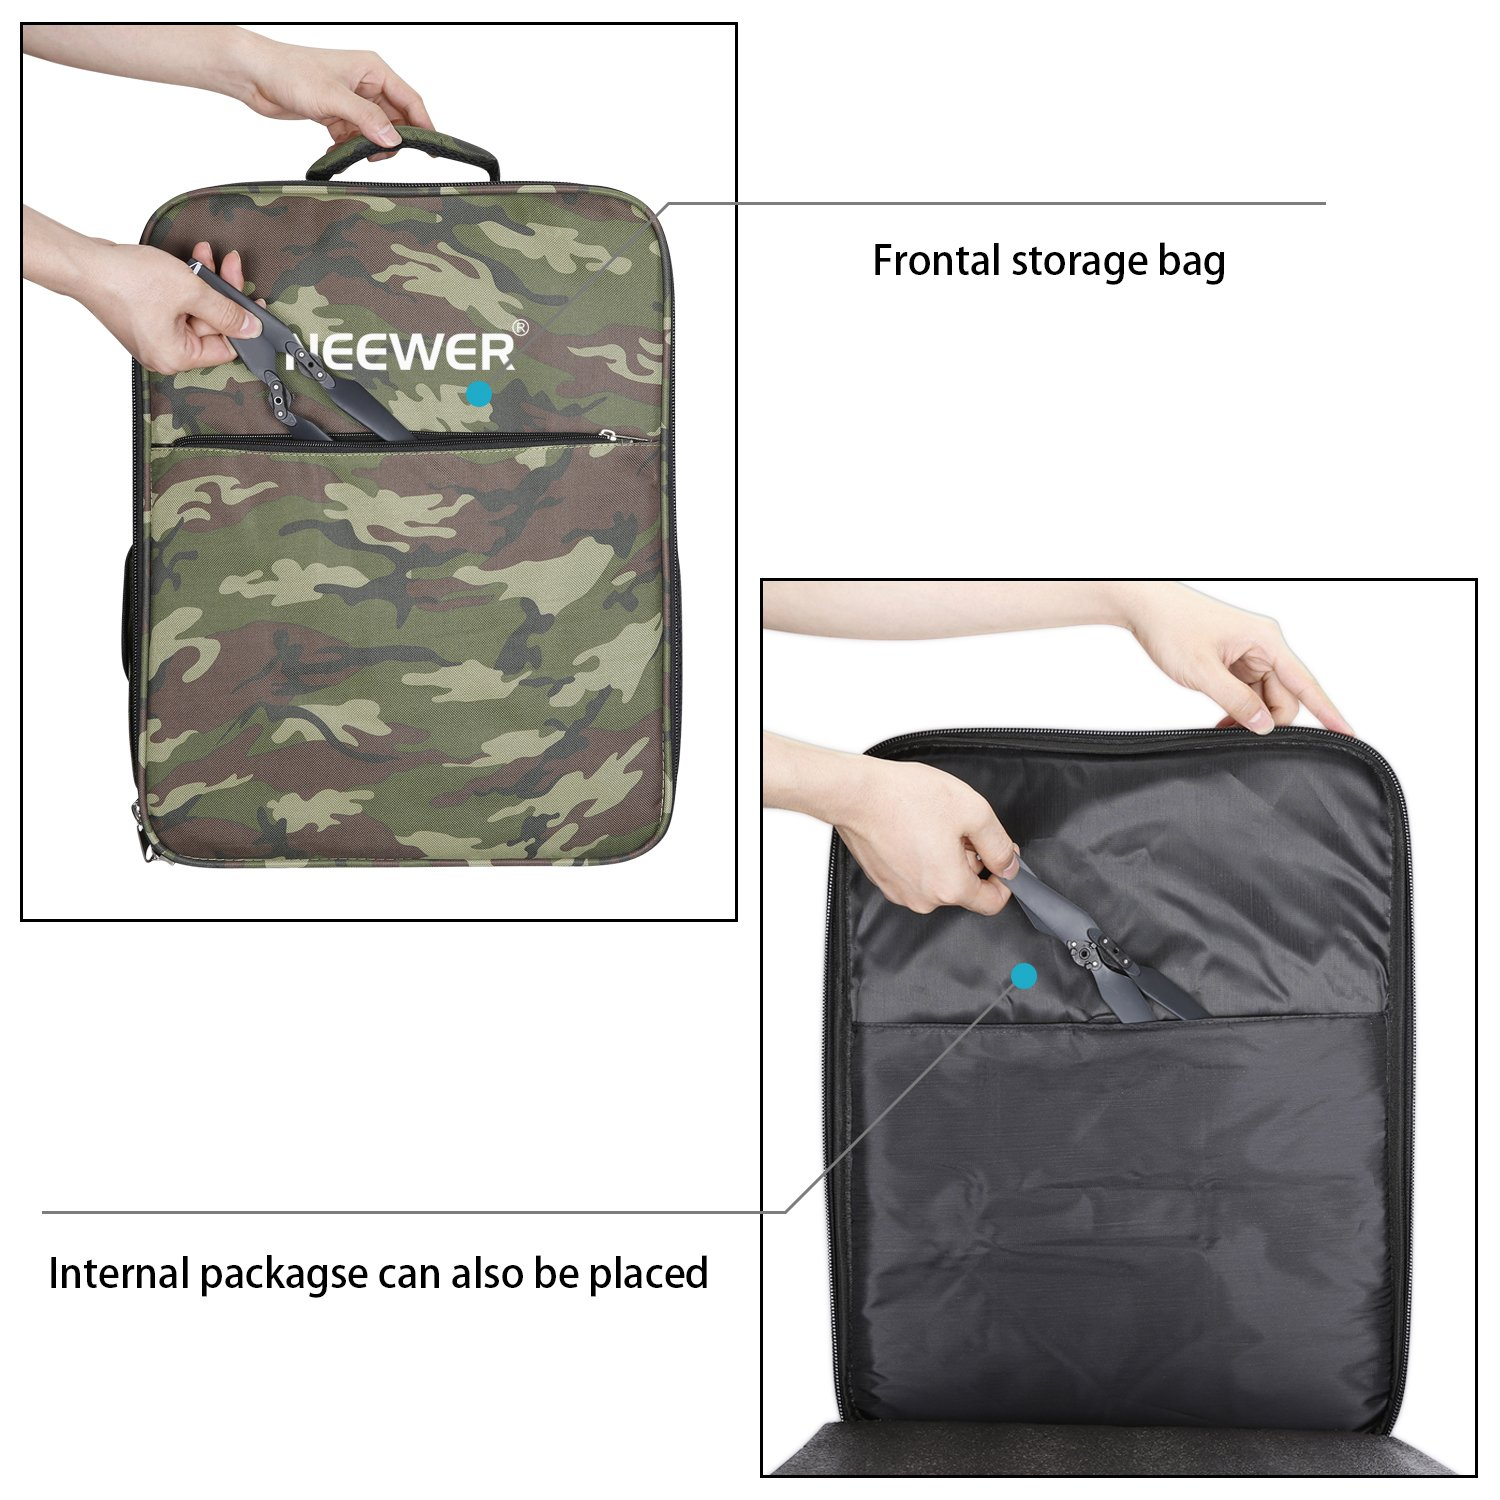 Neewer Multi-Function Waterproof Backpack Bag Case for DJI Phantom 1 FC40 2 2 Vision 2 Vision+ 3, DJI 3 Professional, Advanced, Standard, 4K Cameras and Accessories(Camouflage) by Neewer (Image #6)